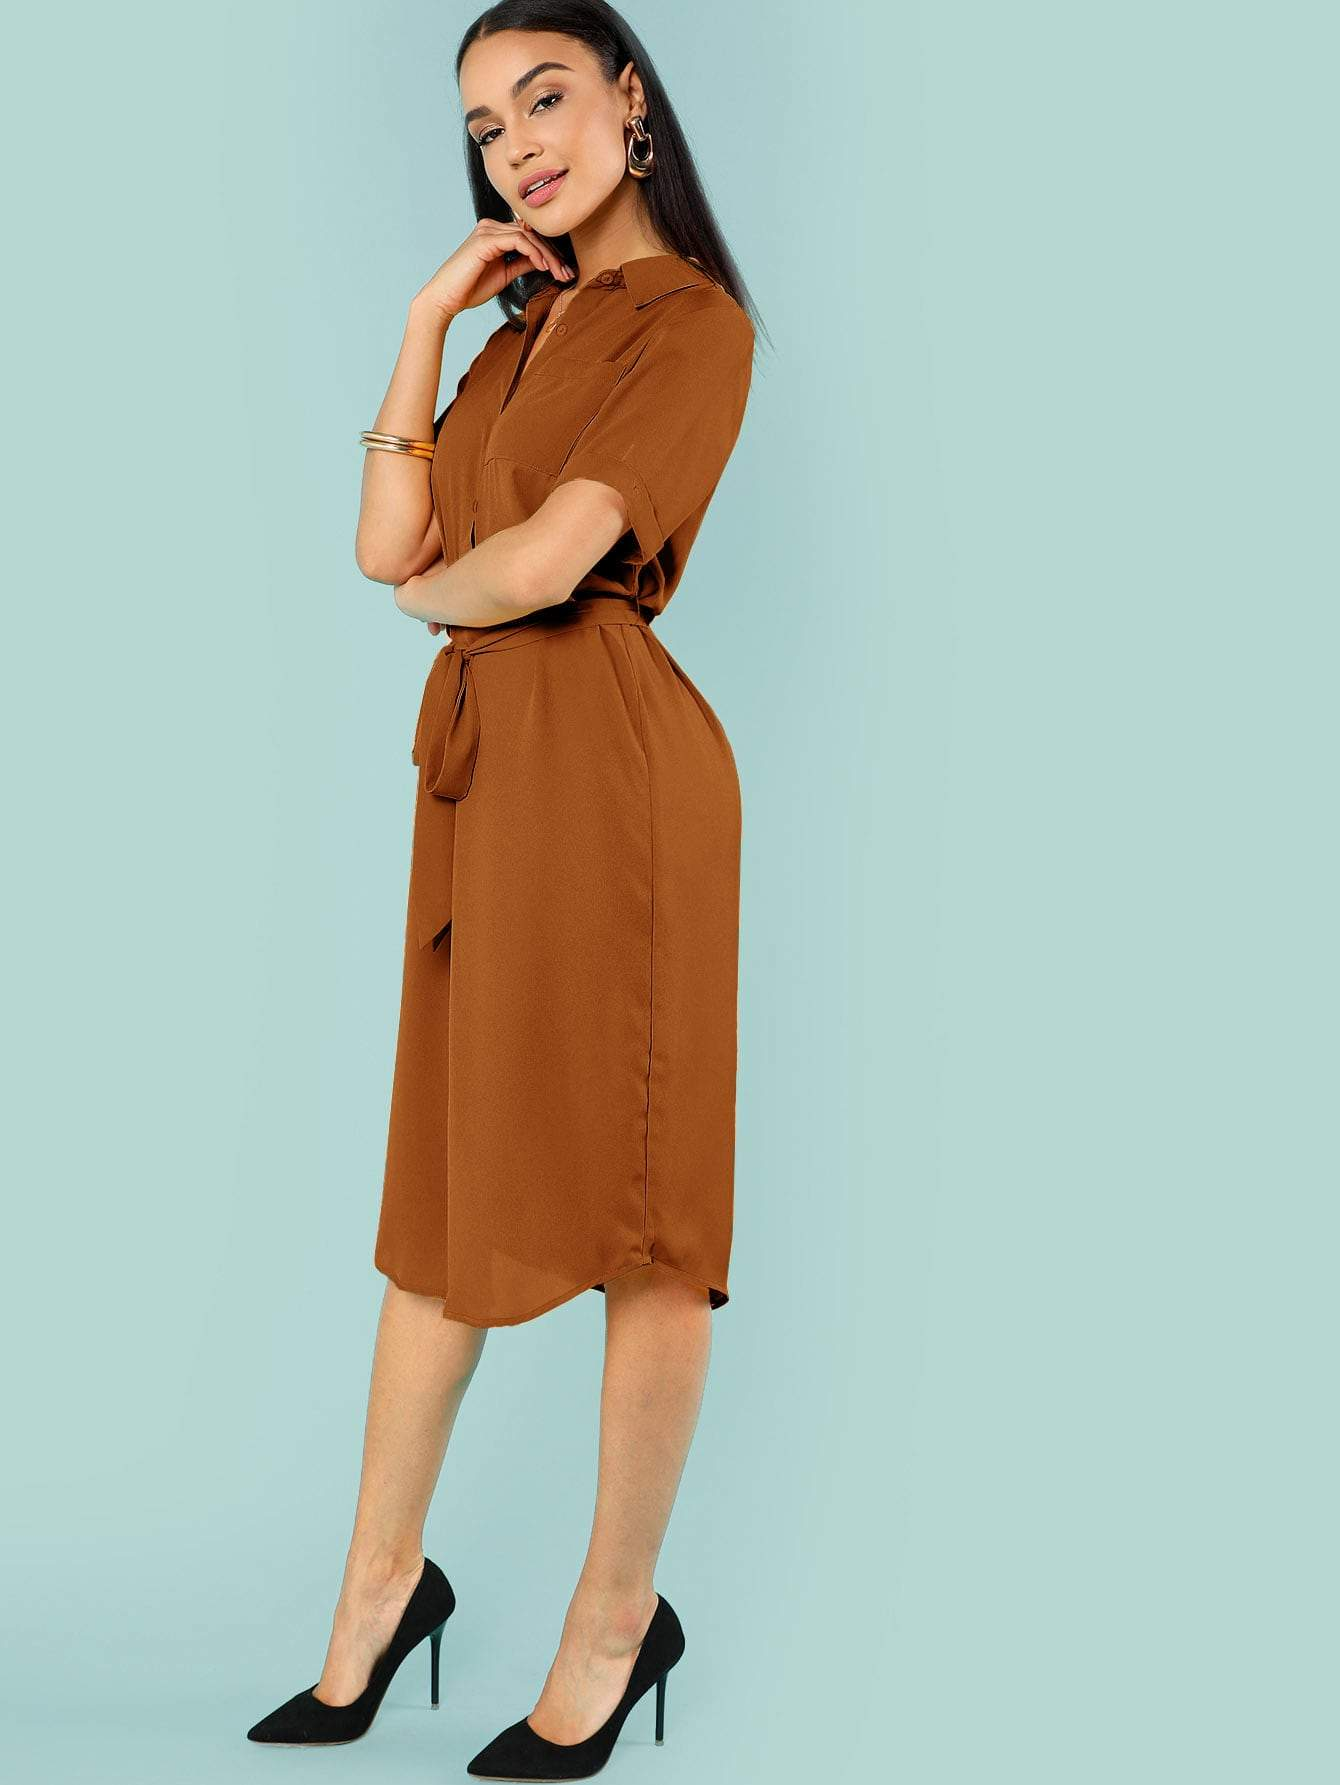 Brown Belted Shirt Dress - LoveSylvester